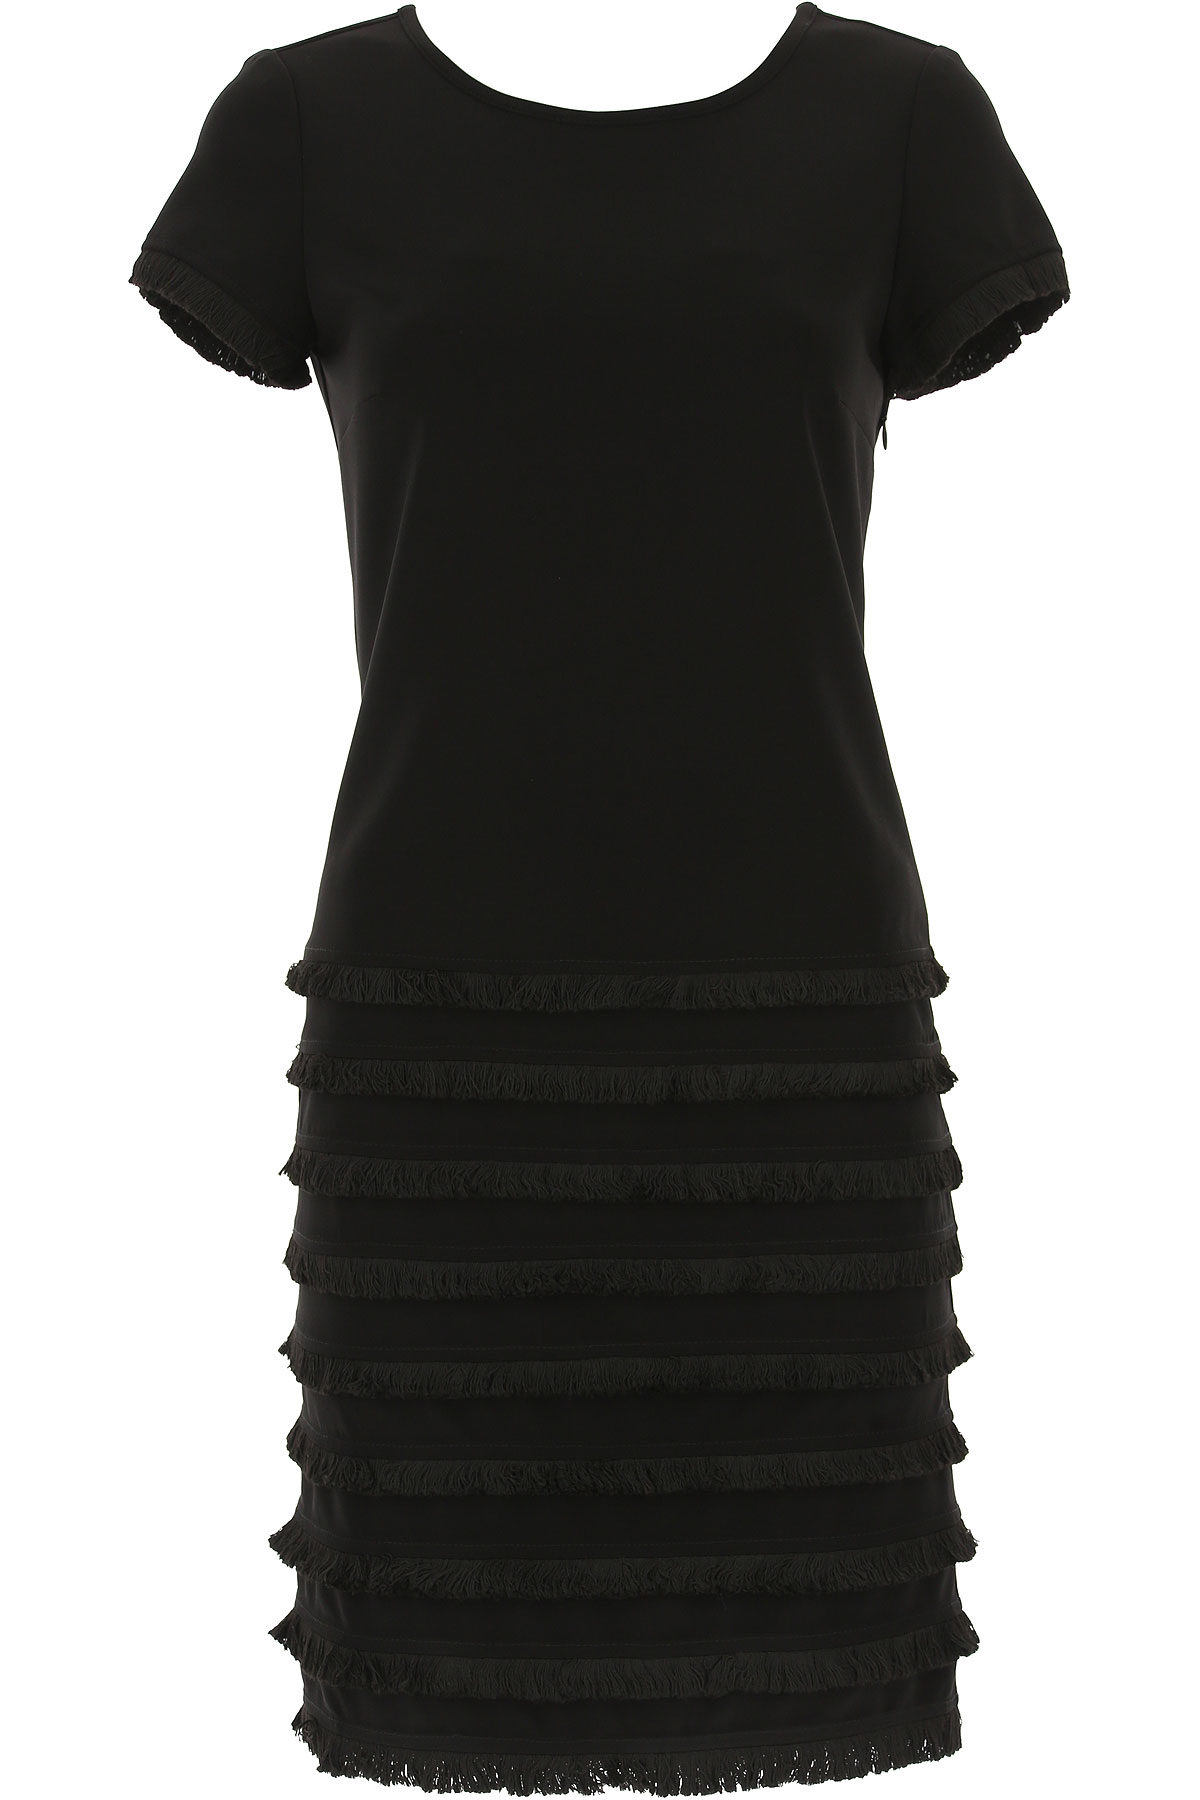 Image of Joseph Ribkoff Dress for Women, Evening Cocktail Party, Black, polyester, 2017, 4 6 8